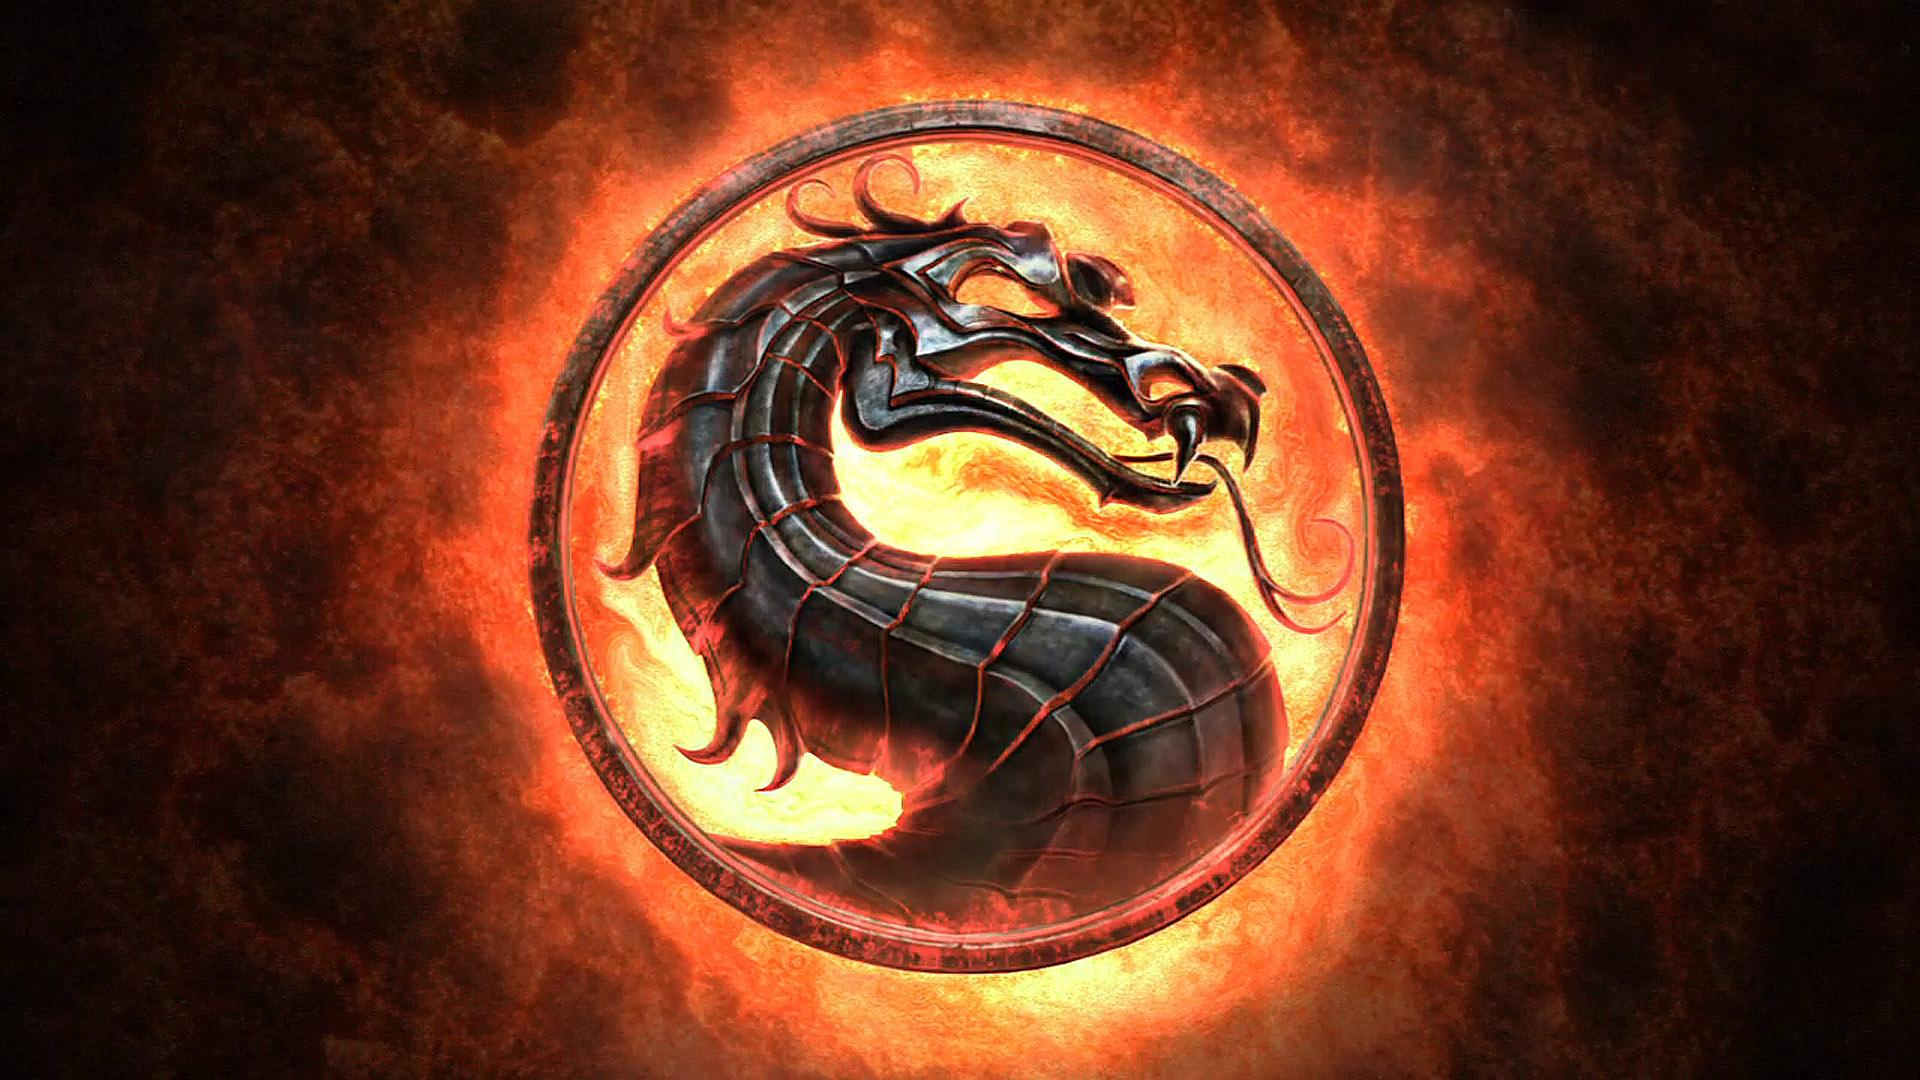 Download Mortal Kombat Logo HD Wallpaper 4079 Full Size 1920x1080